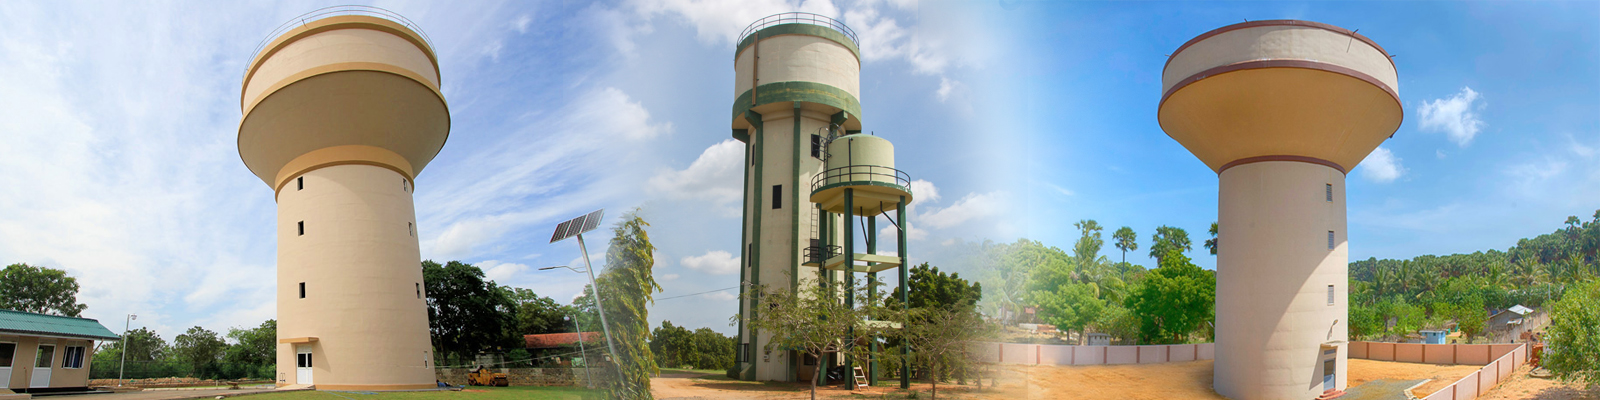 Water Tank Cleaning Service in India  @MaxCleaner